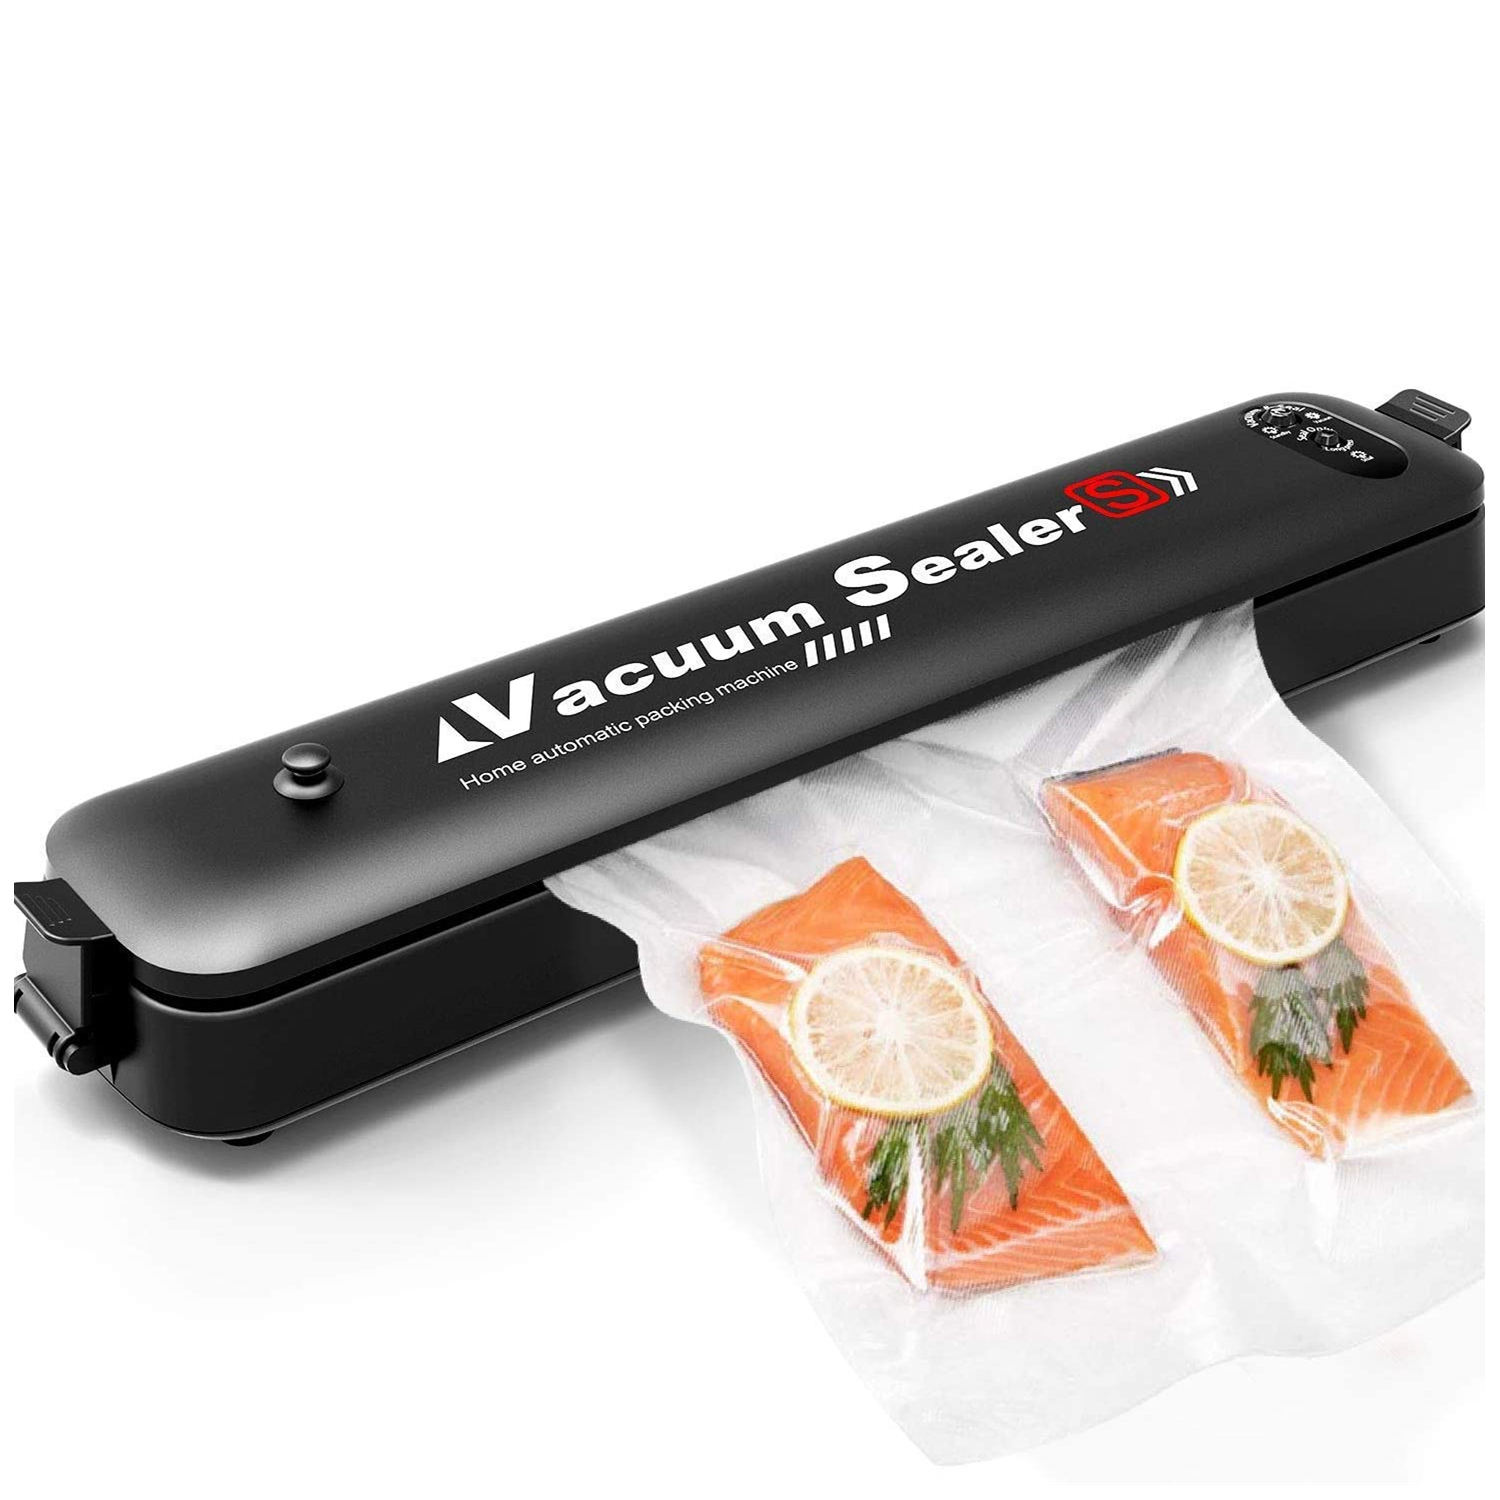 Vacuum Sealer Automatic Vacuum Sealing Machine Dried and Wet Fresh Food Vacuum Sealer for Camping and Home Use